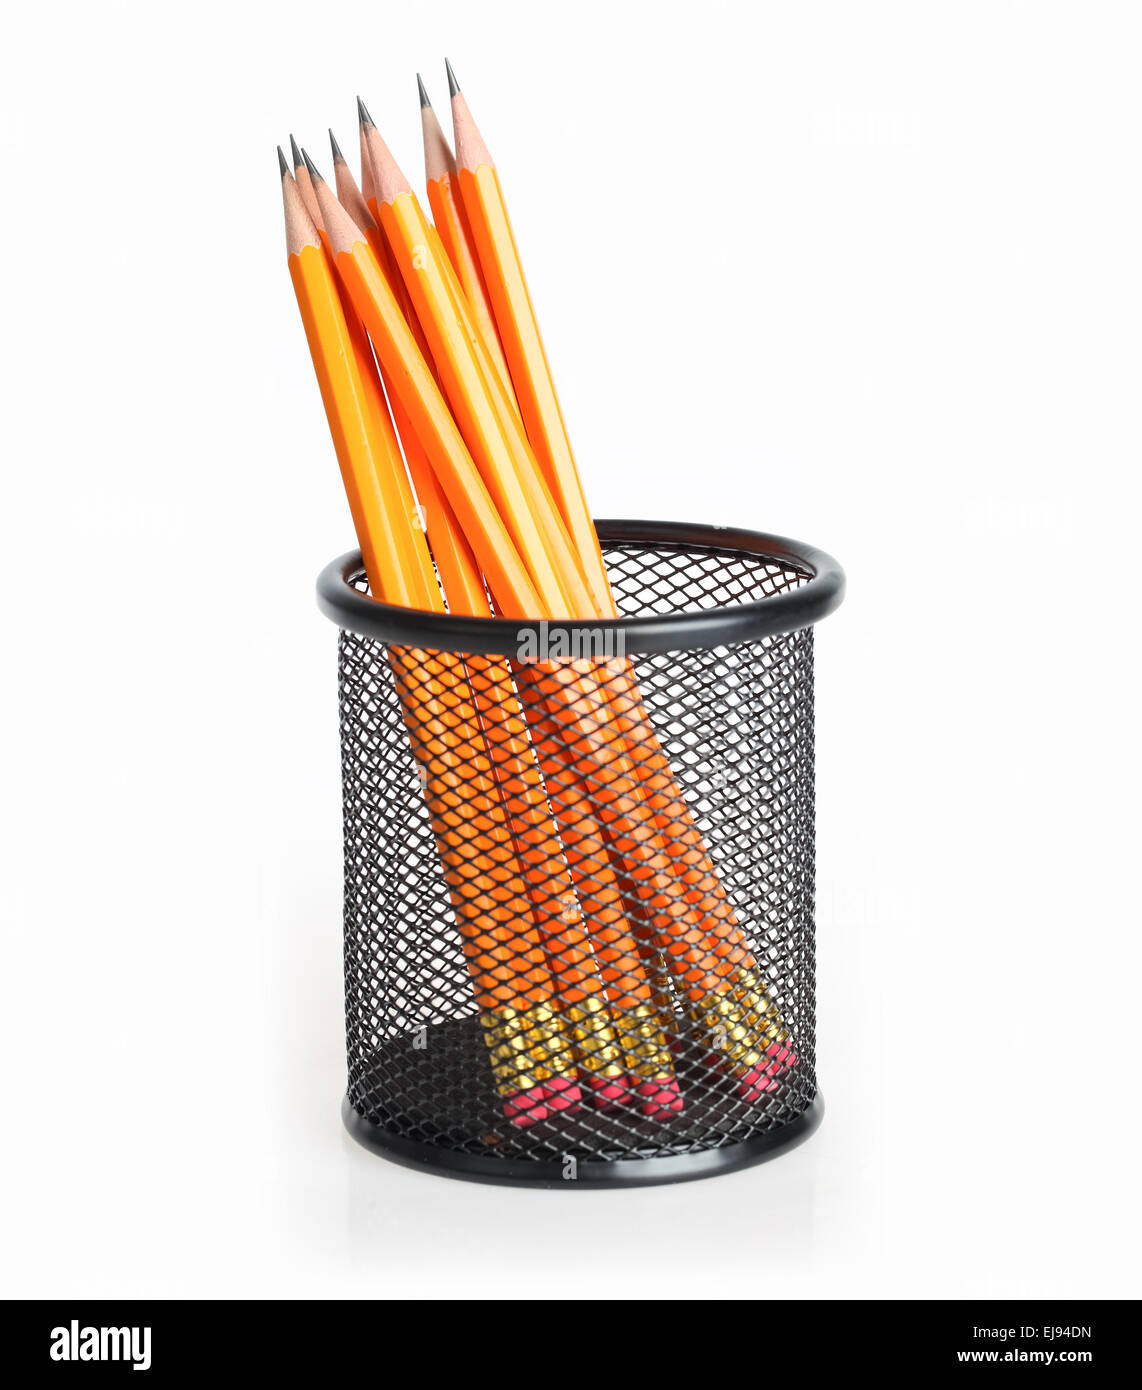 pencil stand - Stock Image